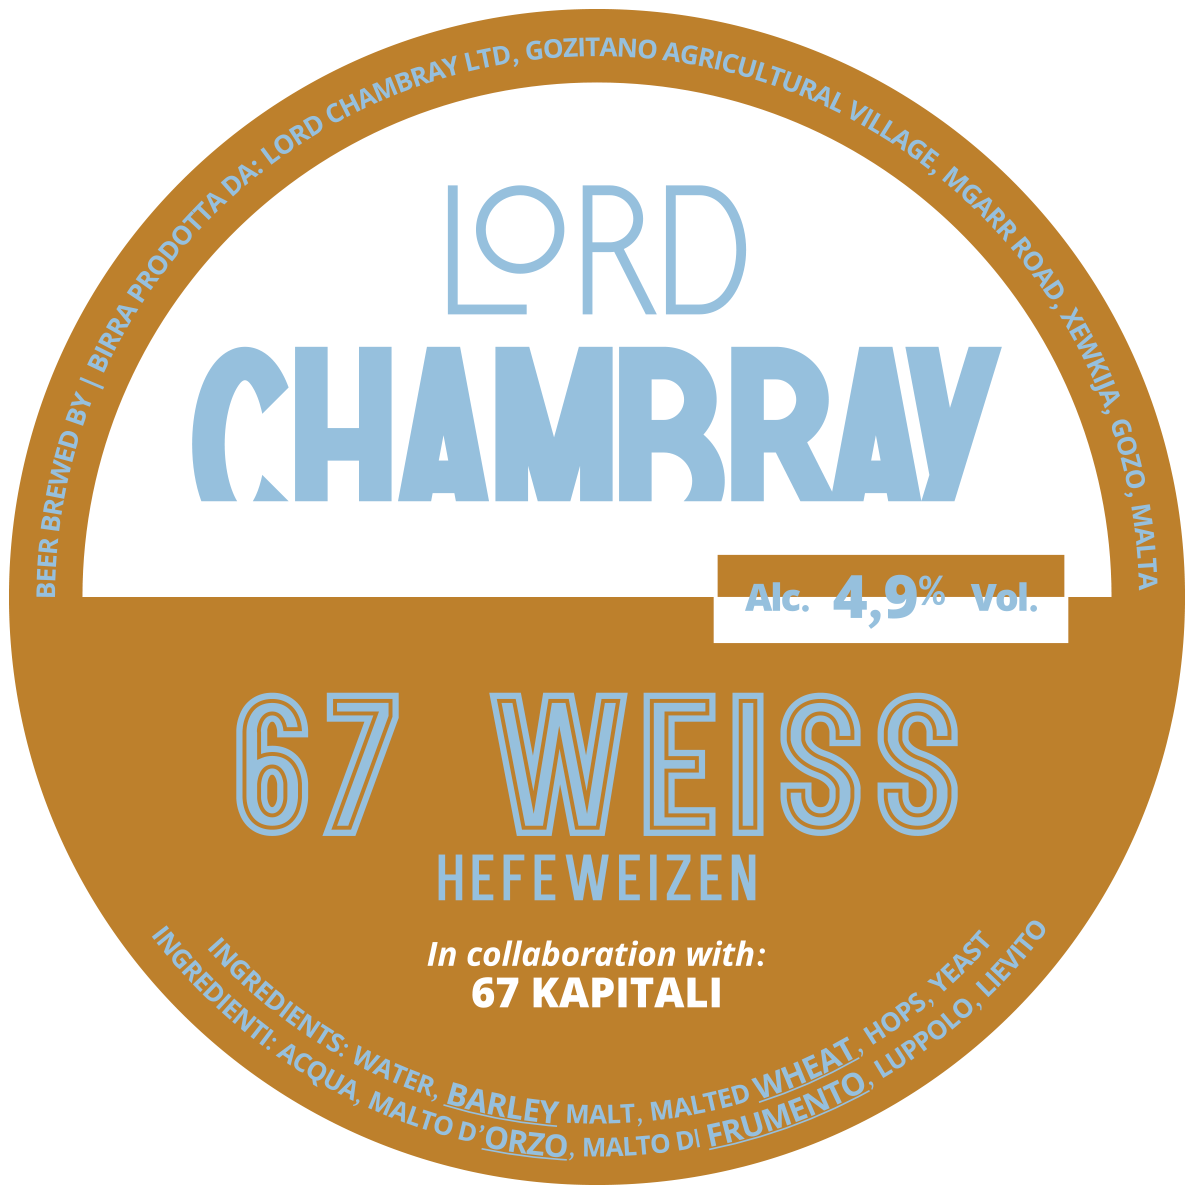 Lord Chambray – Craft Beer from Malta 67 WEISS